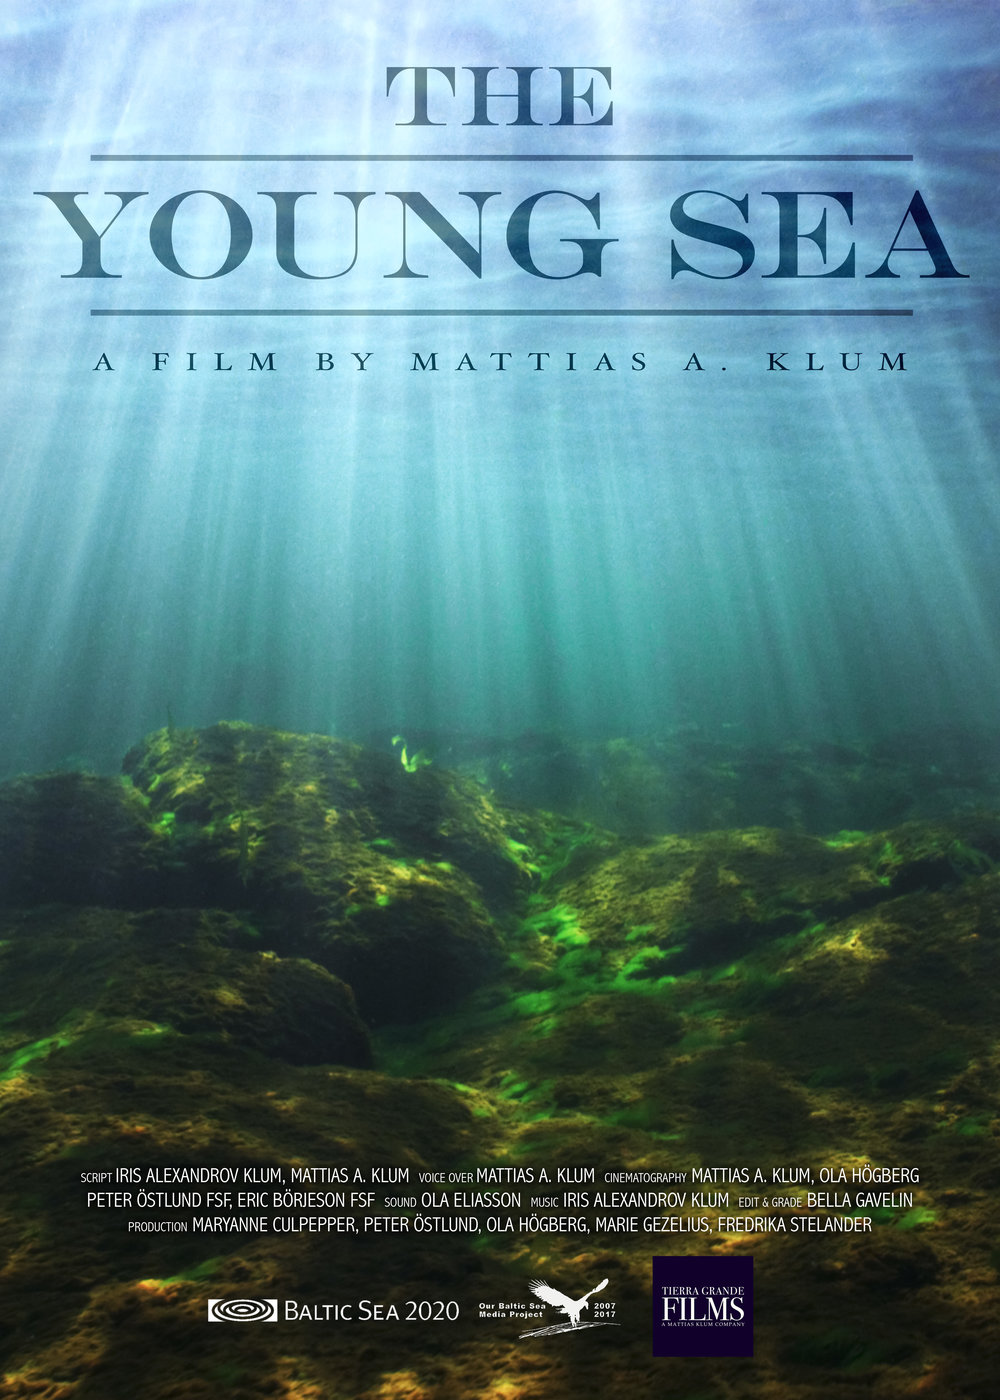 The Young Sea Poster.jpg